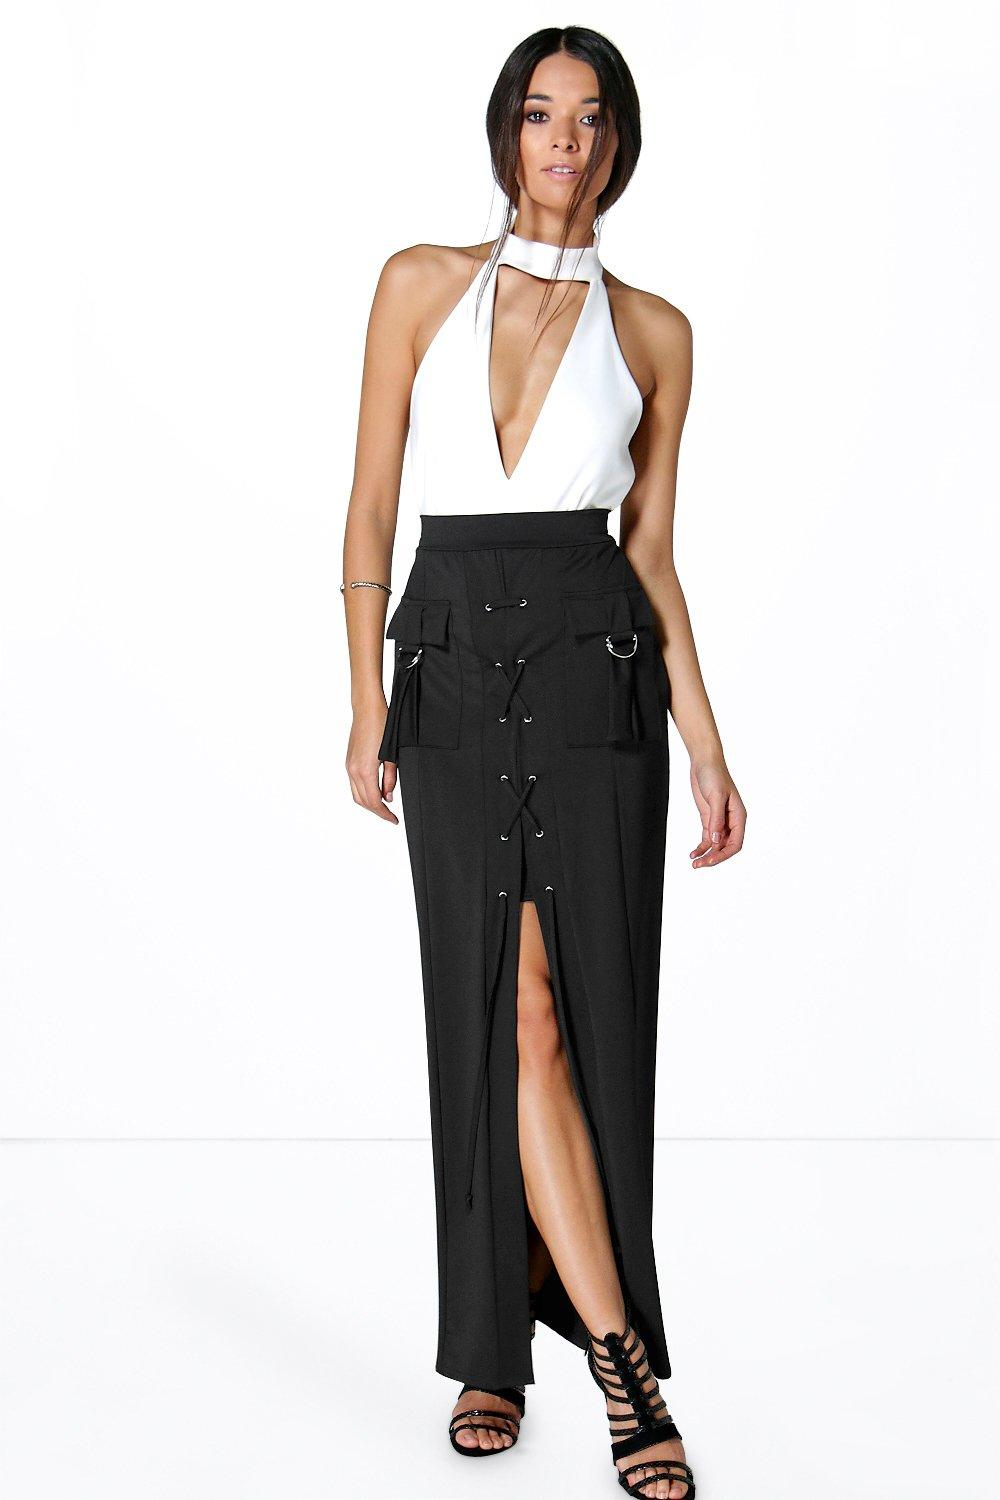 Giselle Lace Up Front Pocket Detail Maxi Skirt